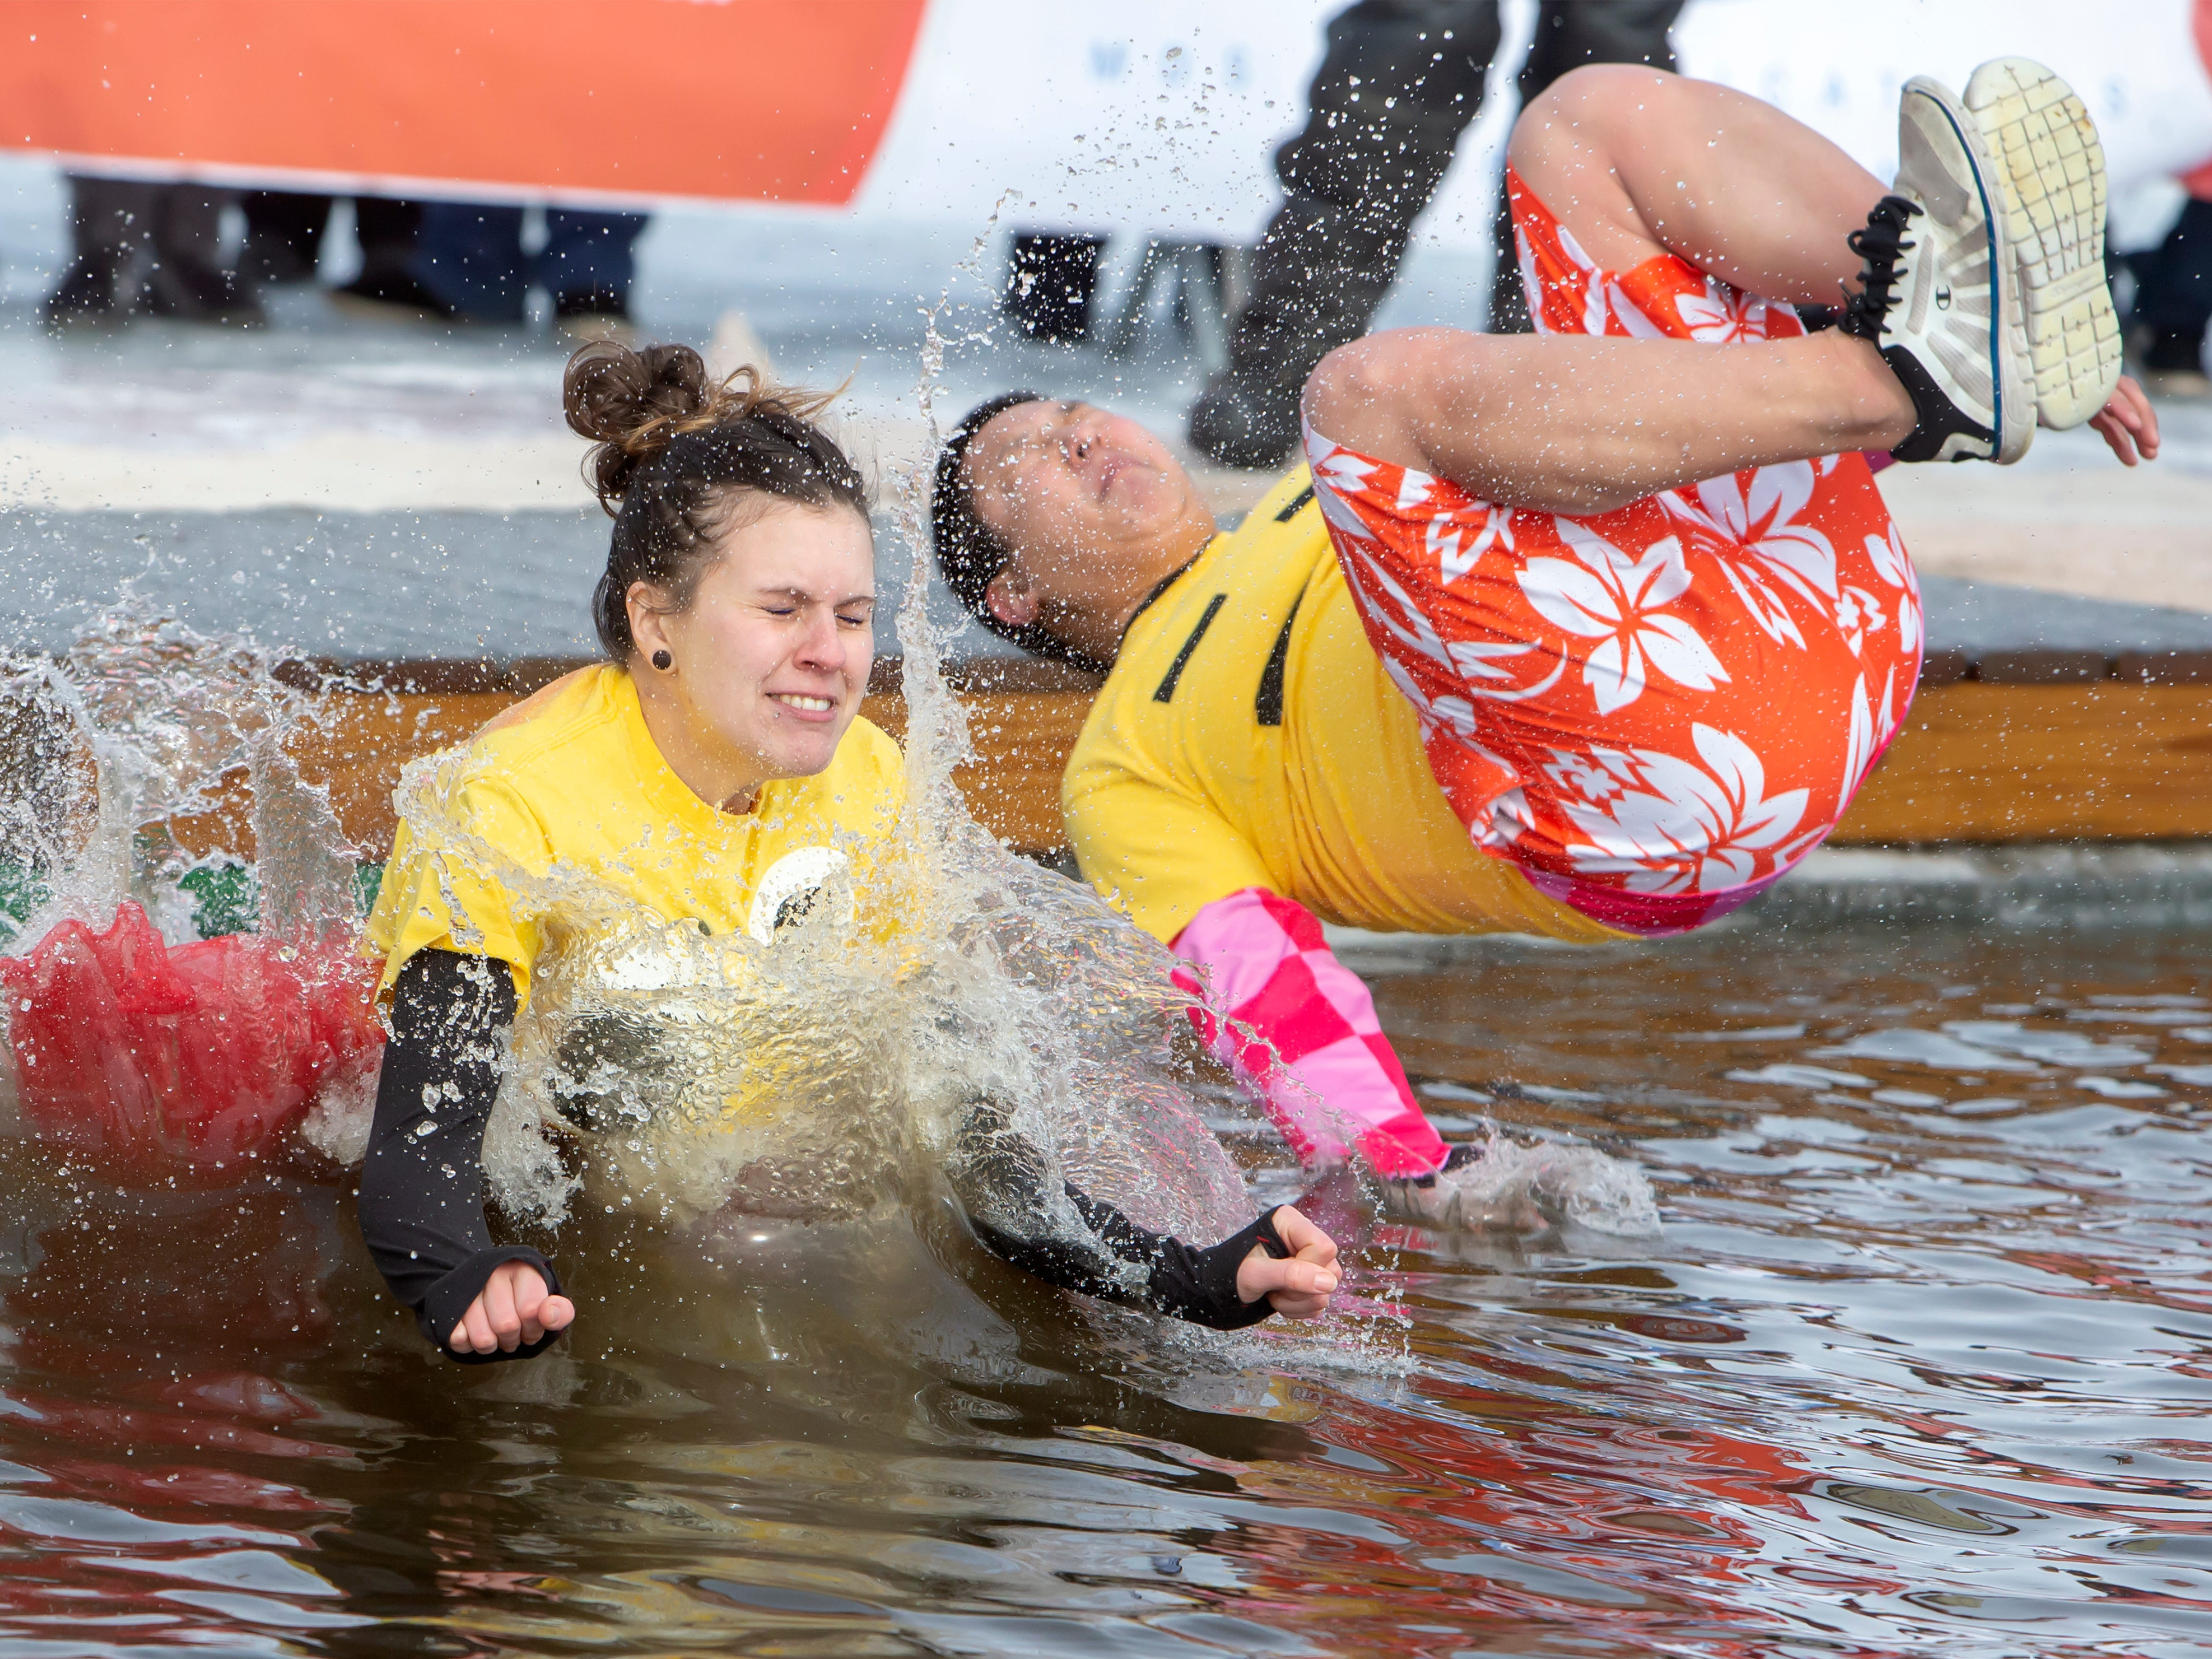 People brave the freezing water to fund raise during the Special Olympics Wisconsin Polar Plunge in Oshkosh, Wis, on Saturday, February 16, 2019, at Miller's Bay in Menominee Park.